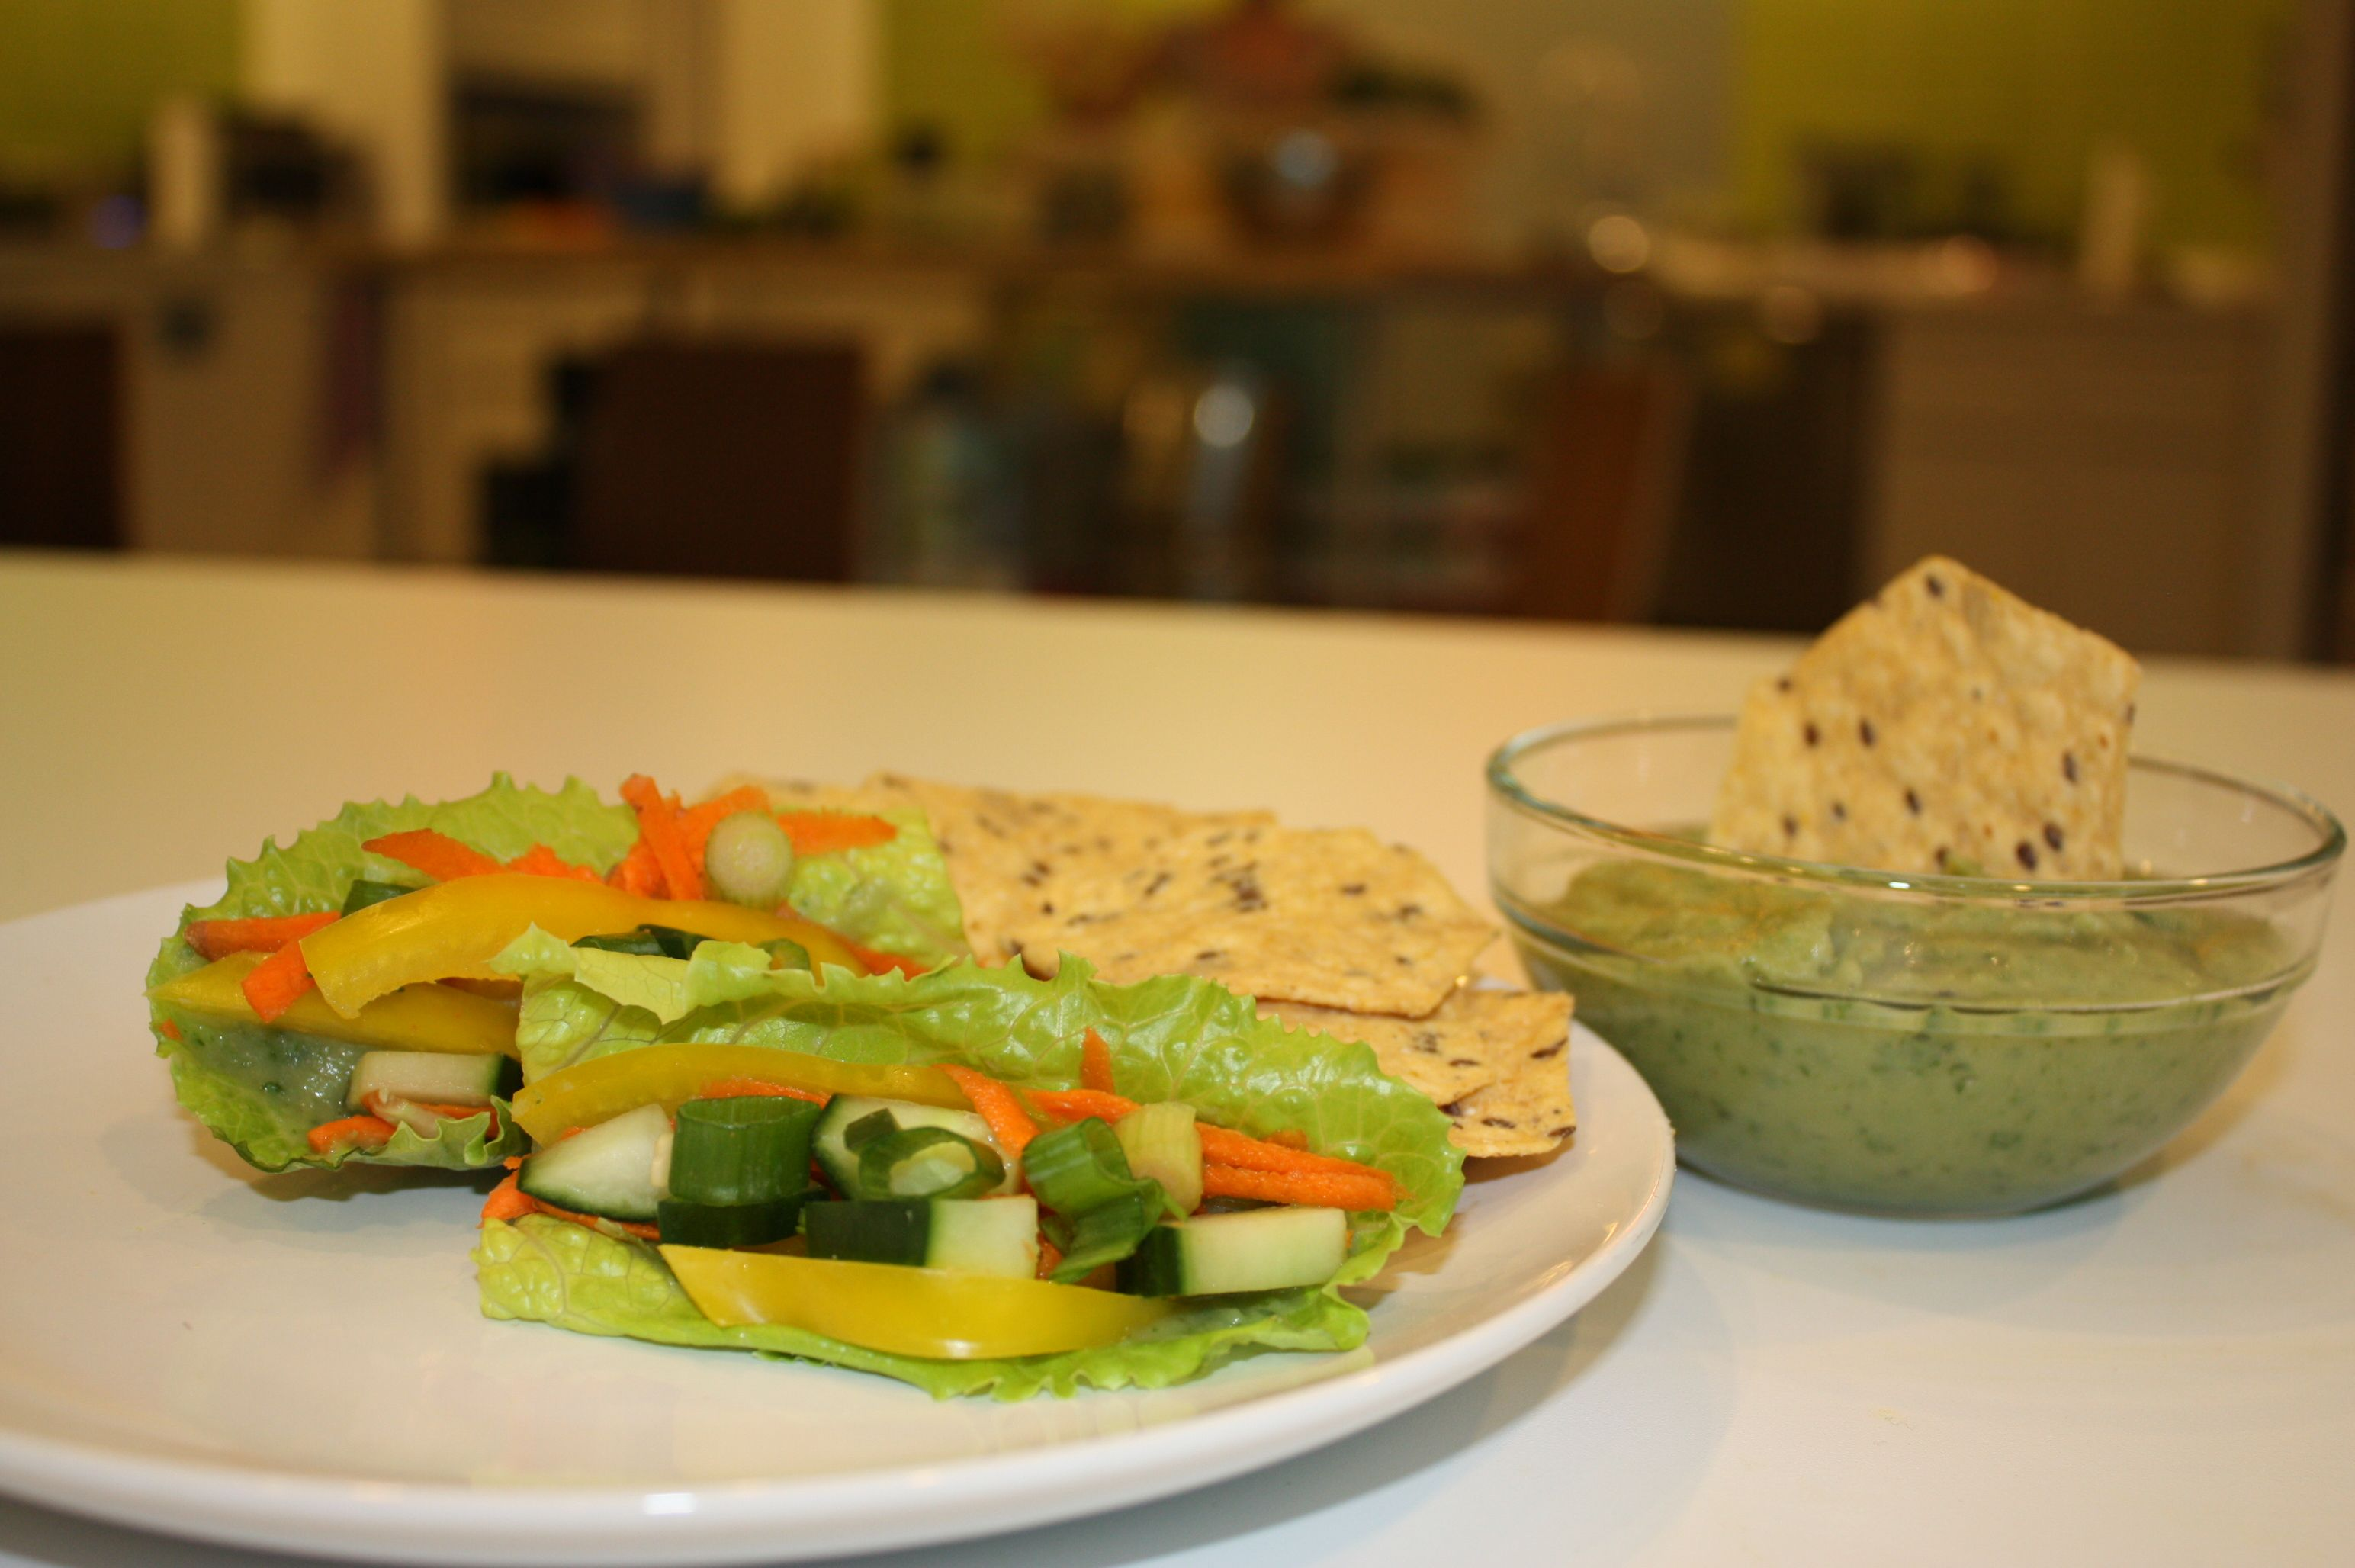 White bean lettuce rolls with bean dip recipe download fallrecipes white bean lettuce rolls with bean dip recipe download fallrecipes we eat this all forumfinder Gallery